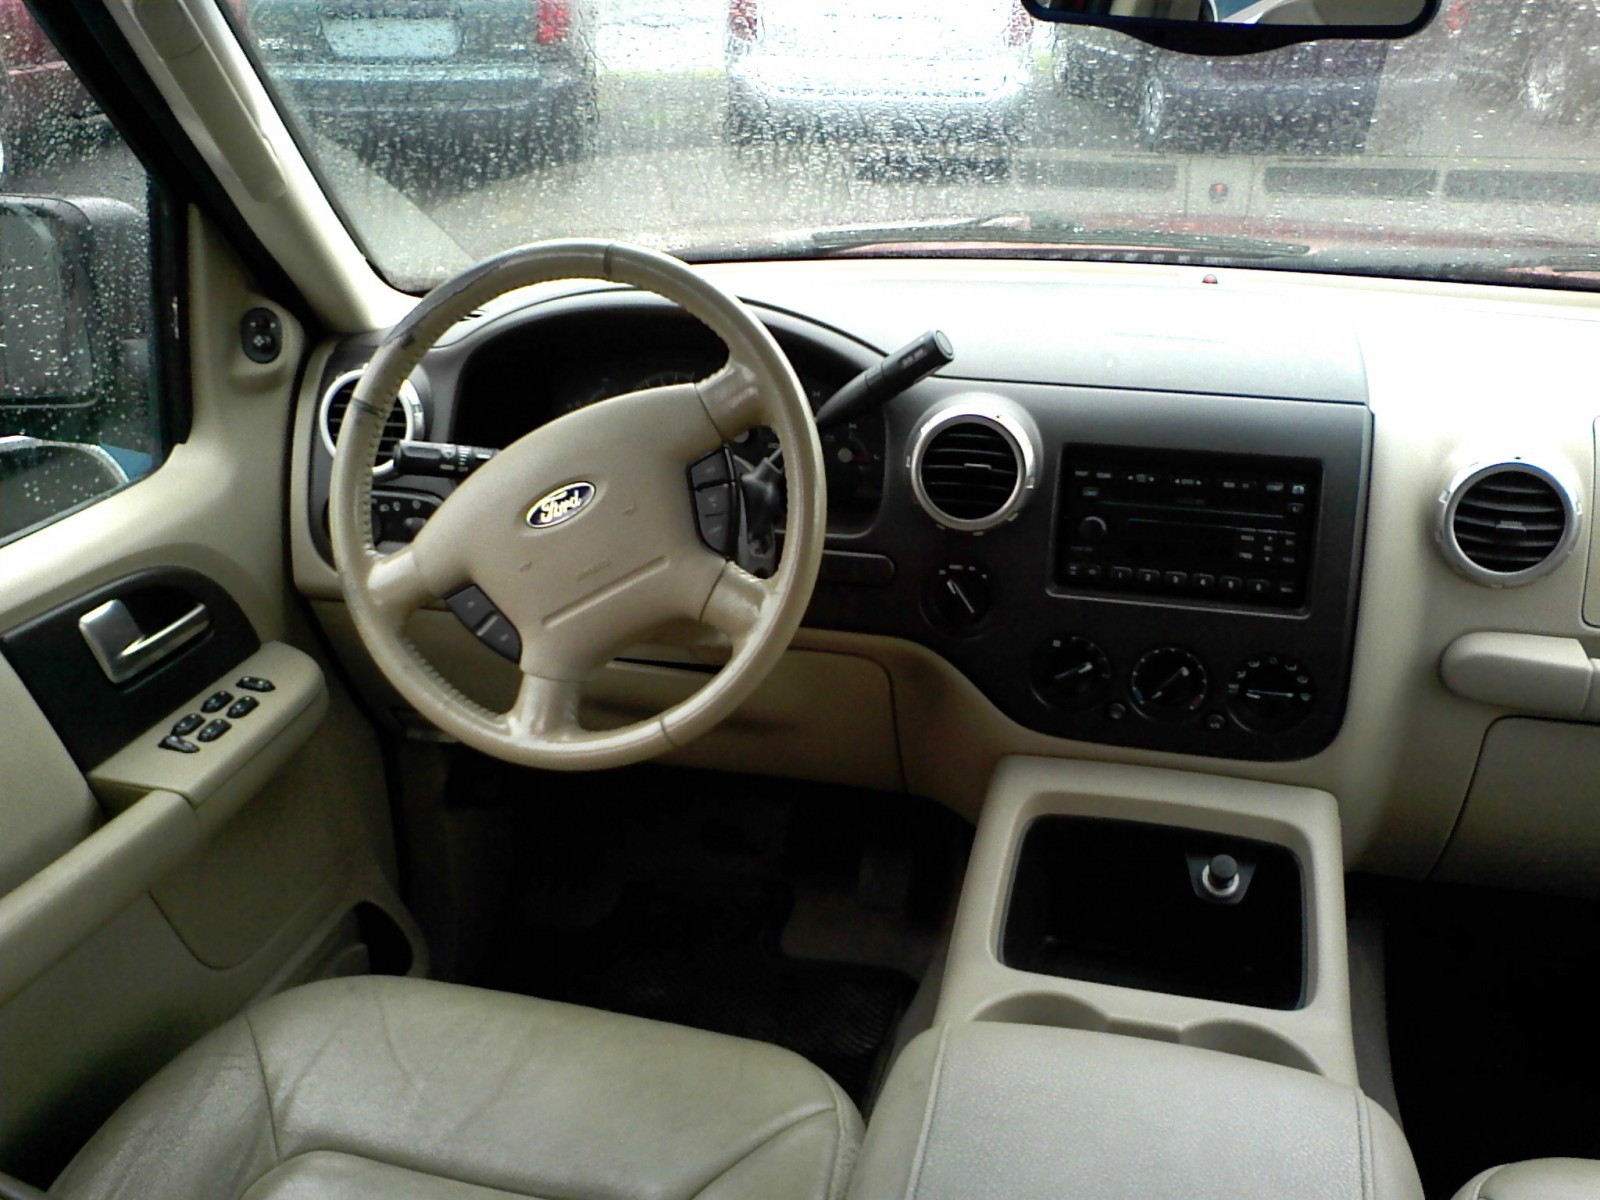 2006 Ford Expedition Interior Pictures Cargurus